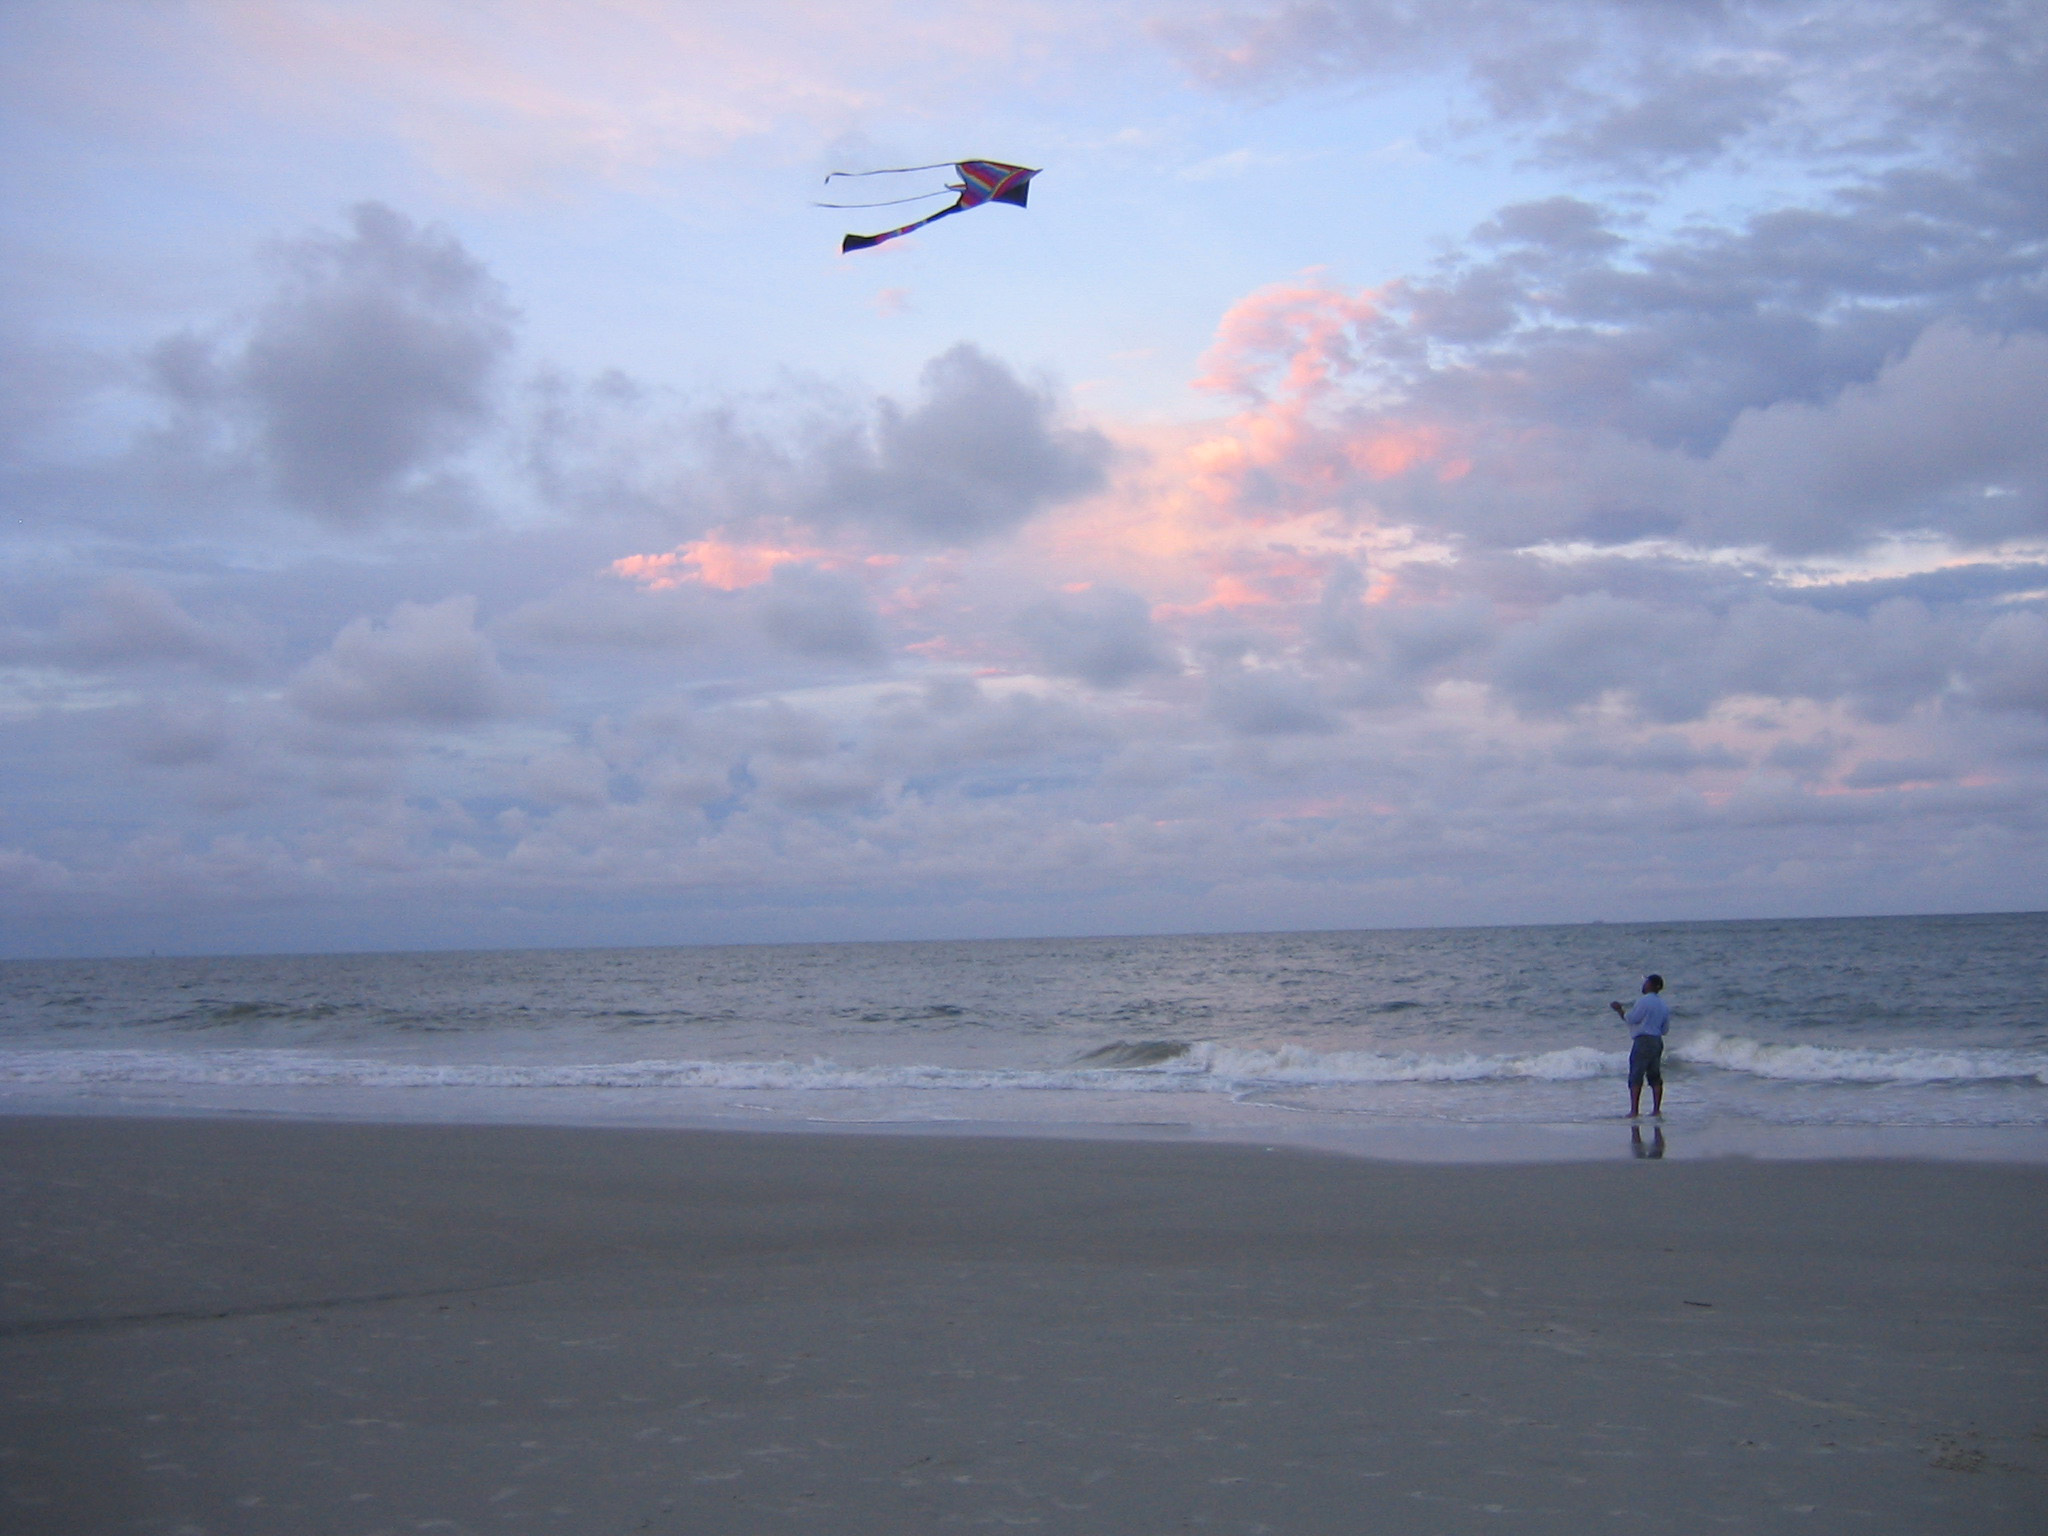 kite a man flying a kite on the beach a good location for flying as winds travelling across the sea contain few up or down draughts which cause kites to fly